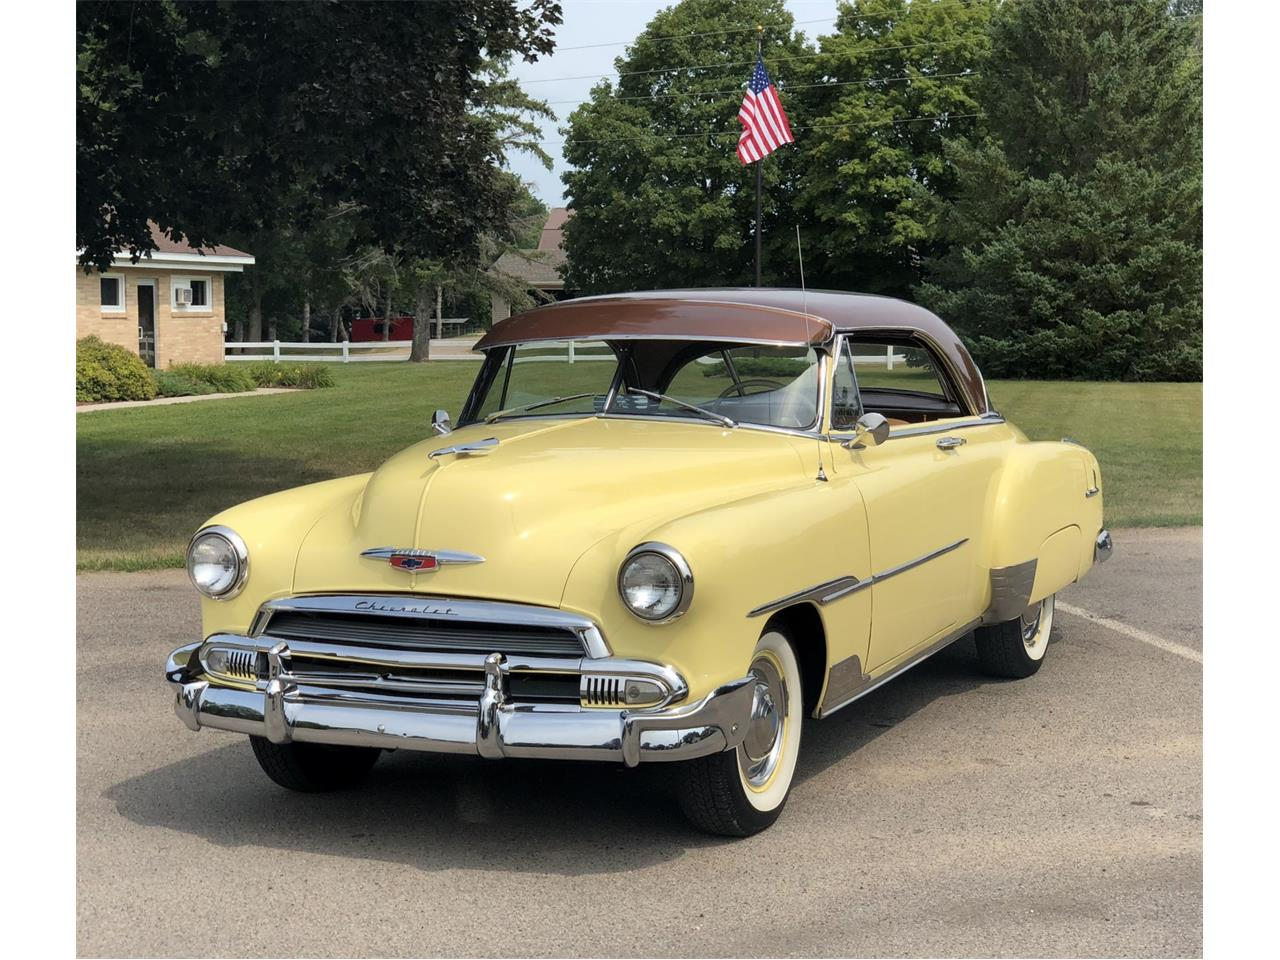 1951 Chevrolet Bel Air For Sale Cc 1131060 2 Door Hardtop Large Picture Of 2195000 Offered By Silver Creek Classics O8qc